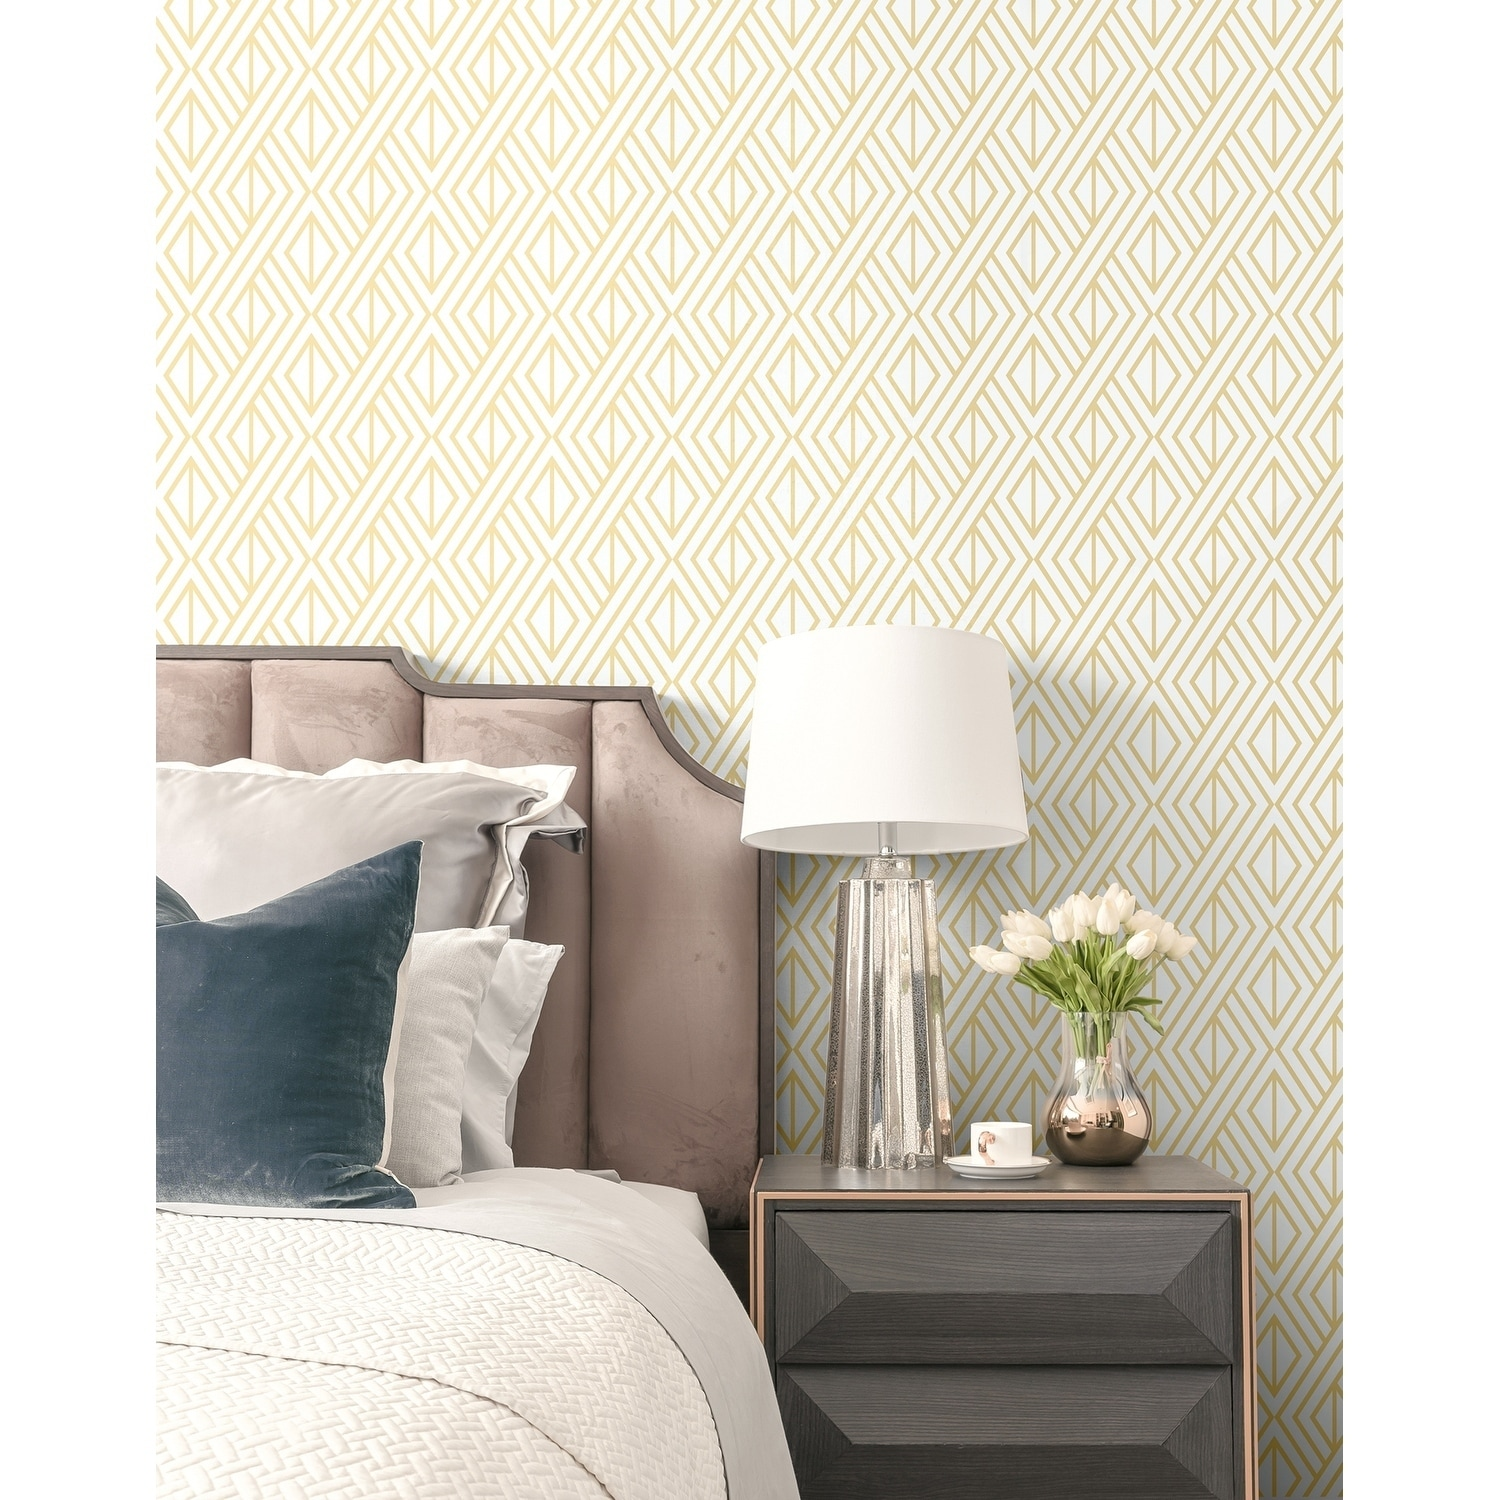 Shop Nextwall Gold Diamond Geometric Peel And Stick Removable Wallpaper 20 5 In W X 18 Ft L Overstock 31053551